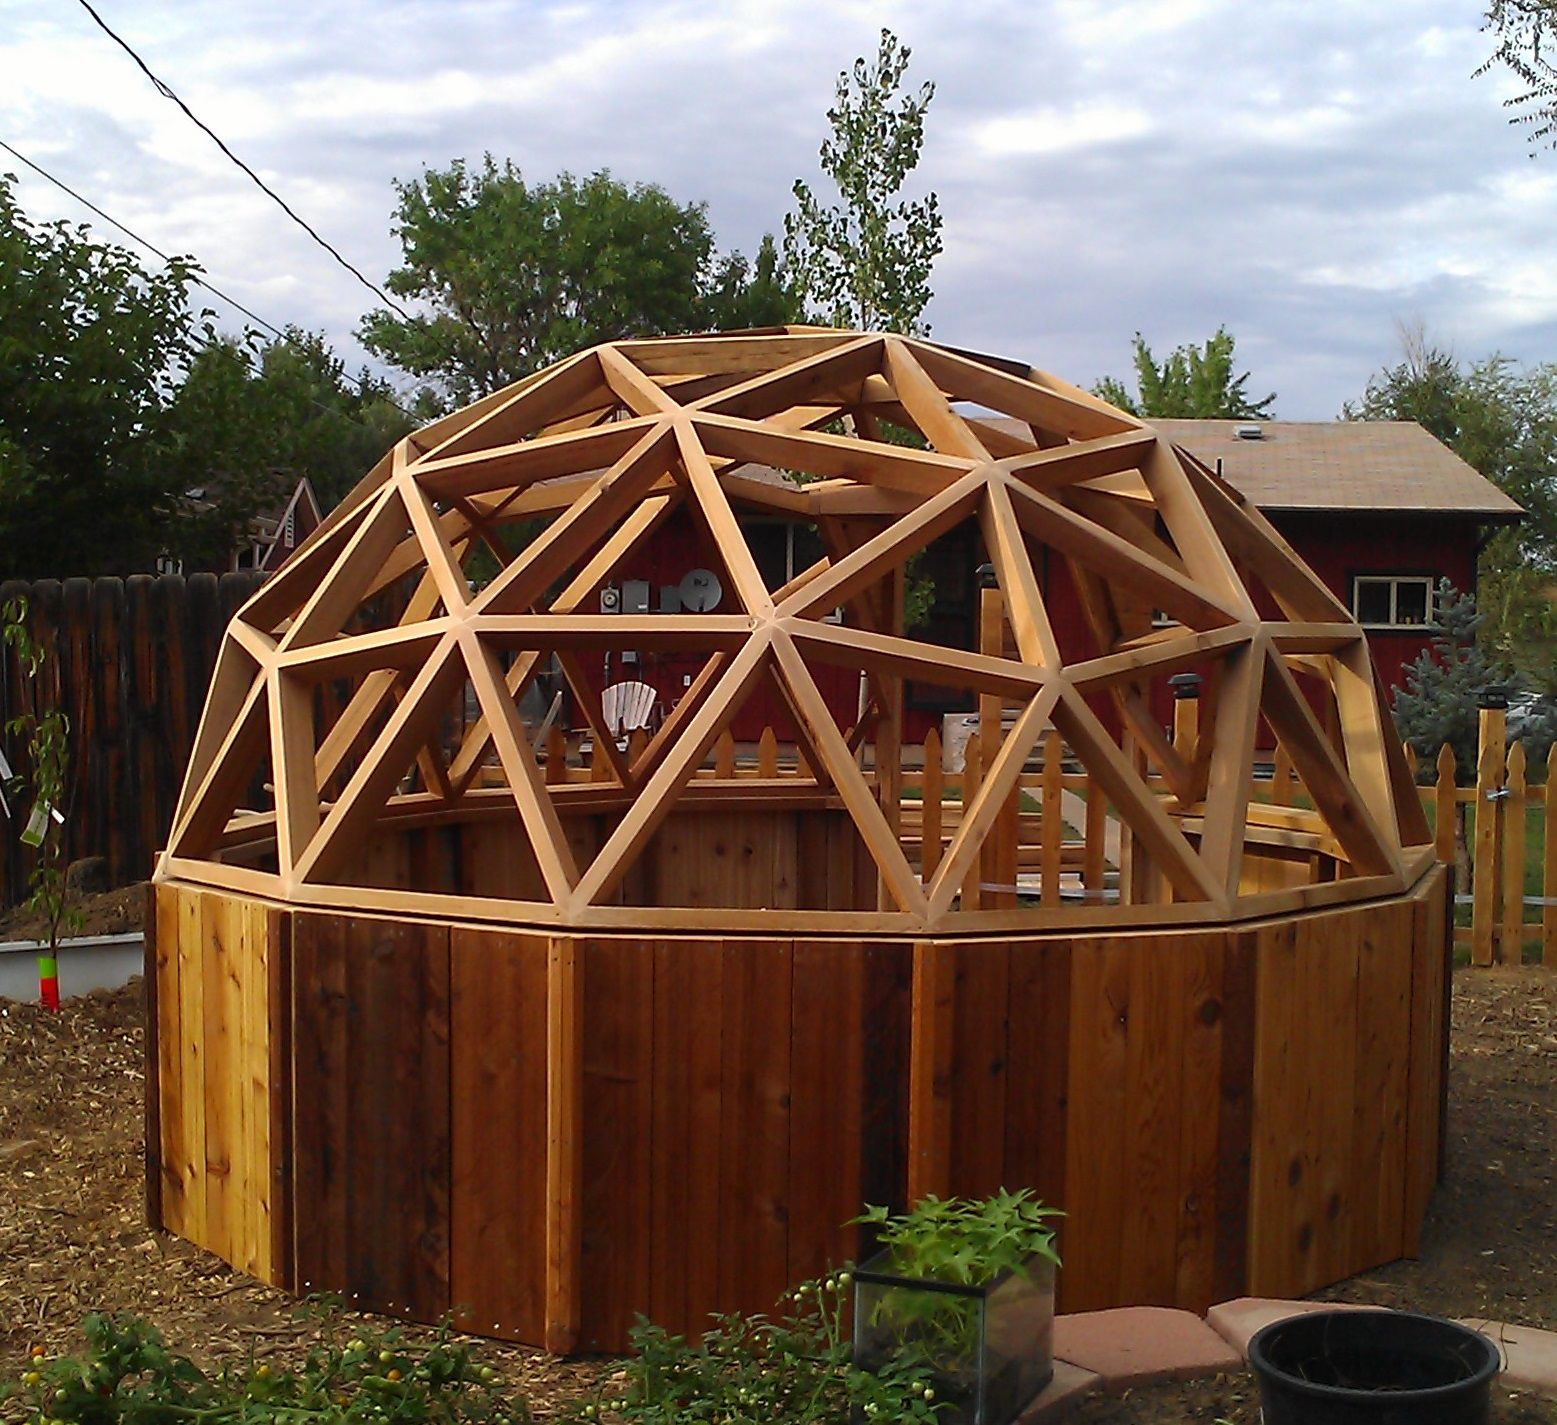 Dome Home Kits And Plans: Geodesic Dome Wood - Pesquisa Google